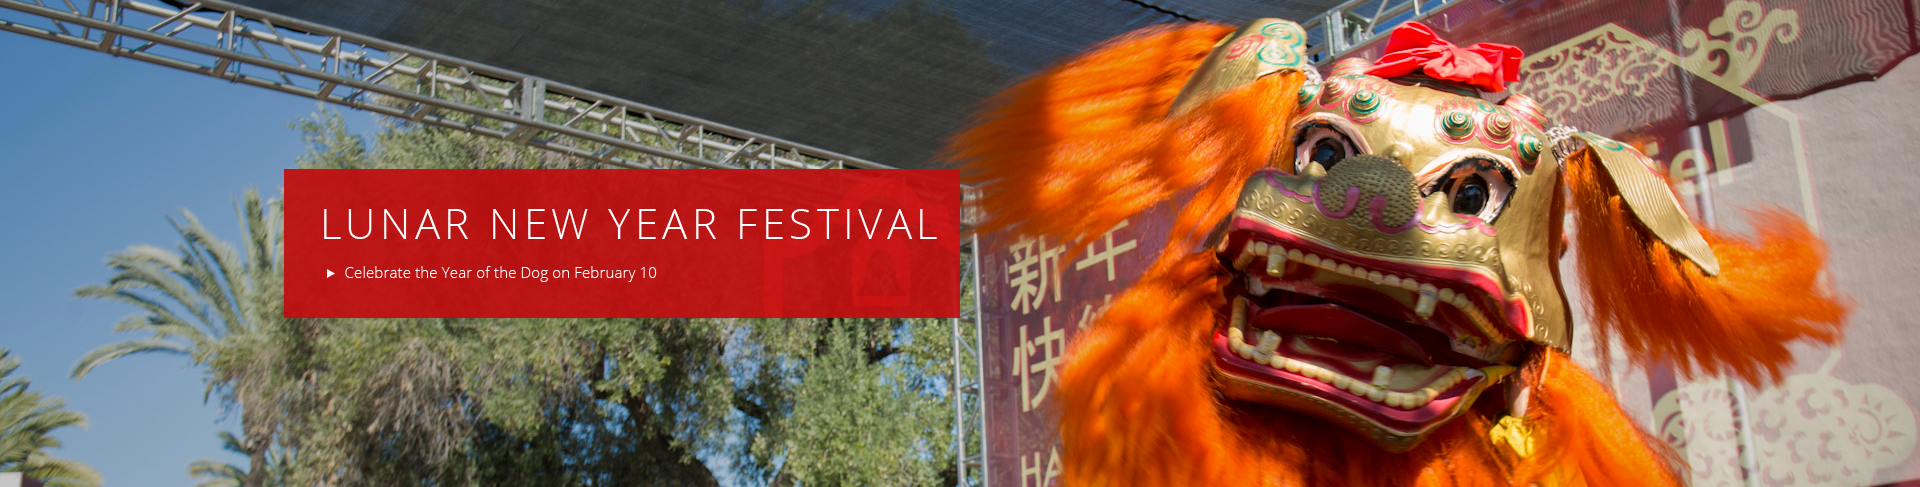 Celebrate the Year of the Dog at this year's Lunar New Year Festival!